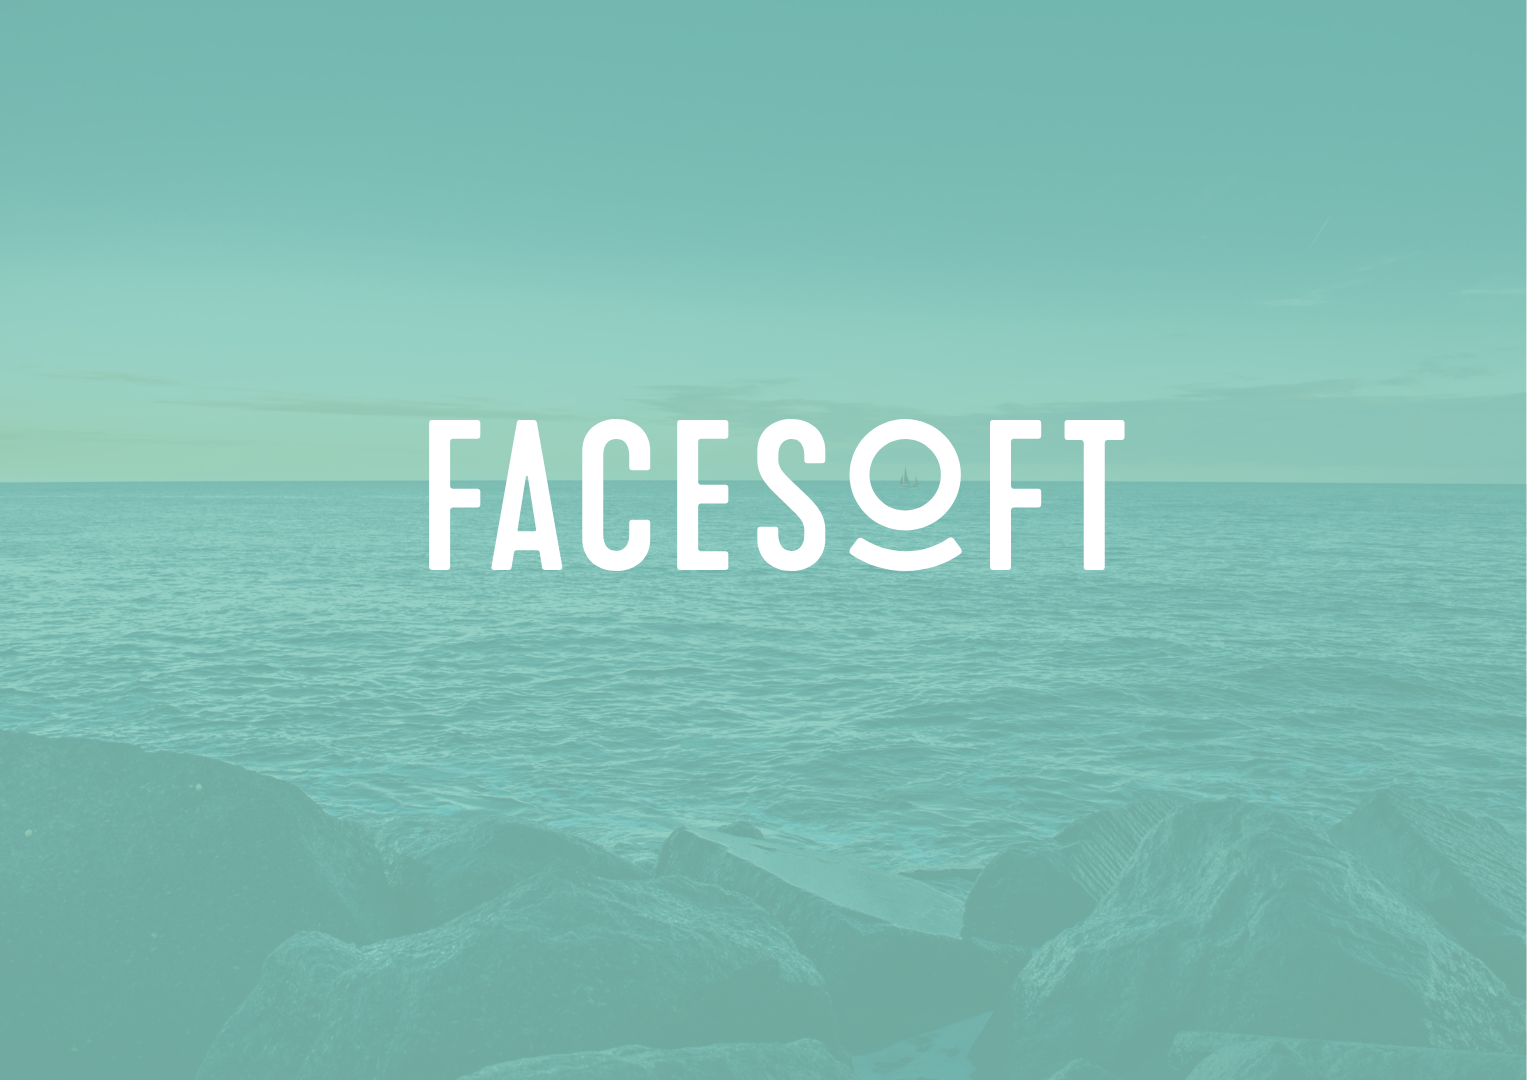 VIEW THE FACESOFT CASE STUDY